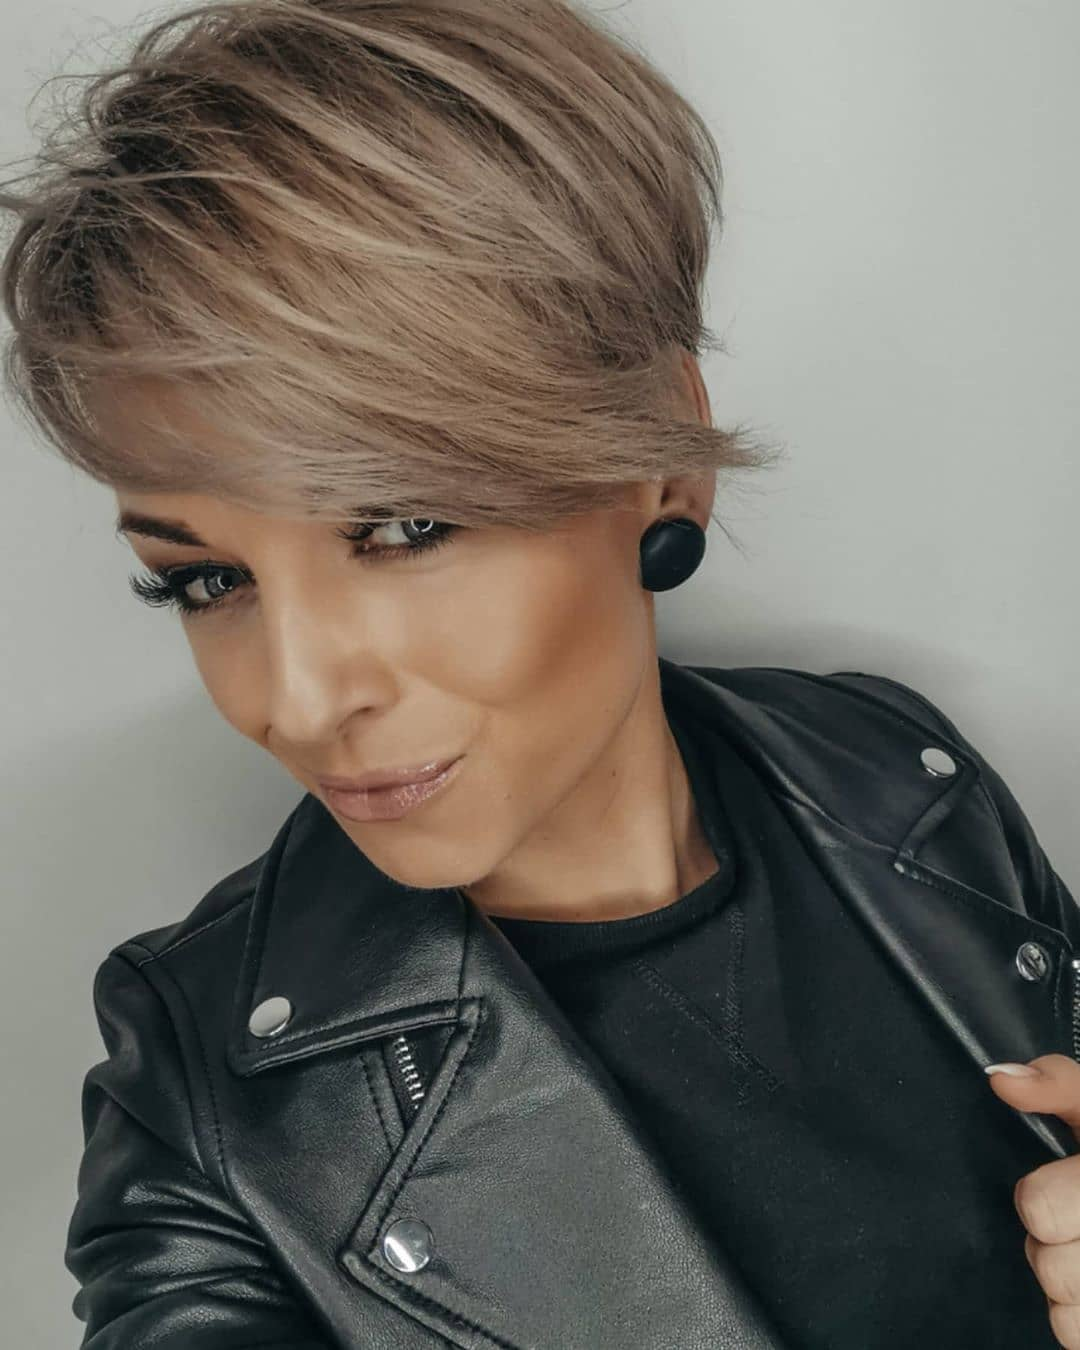 10 Easy Pixie Haircuts for Women - Straight Hairstyles for ...